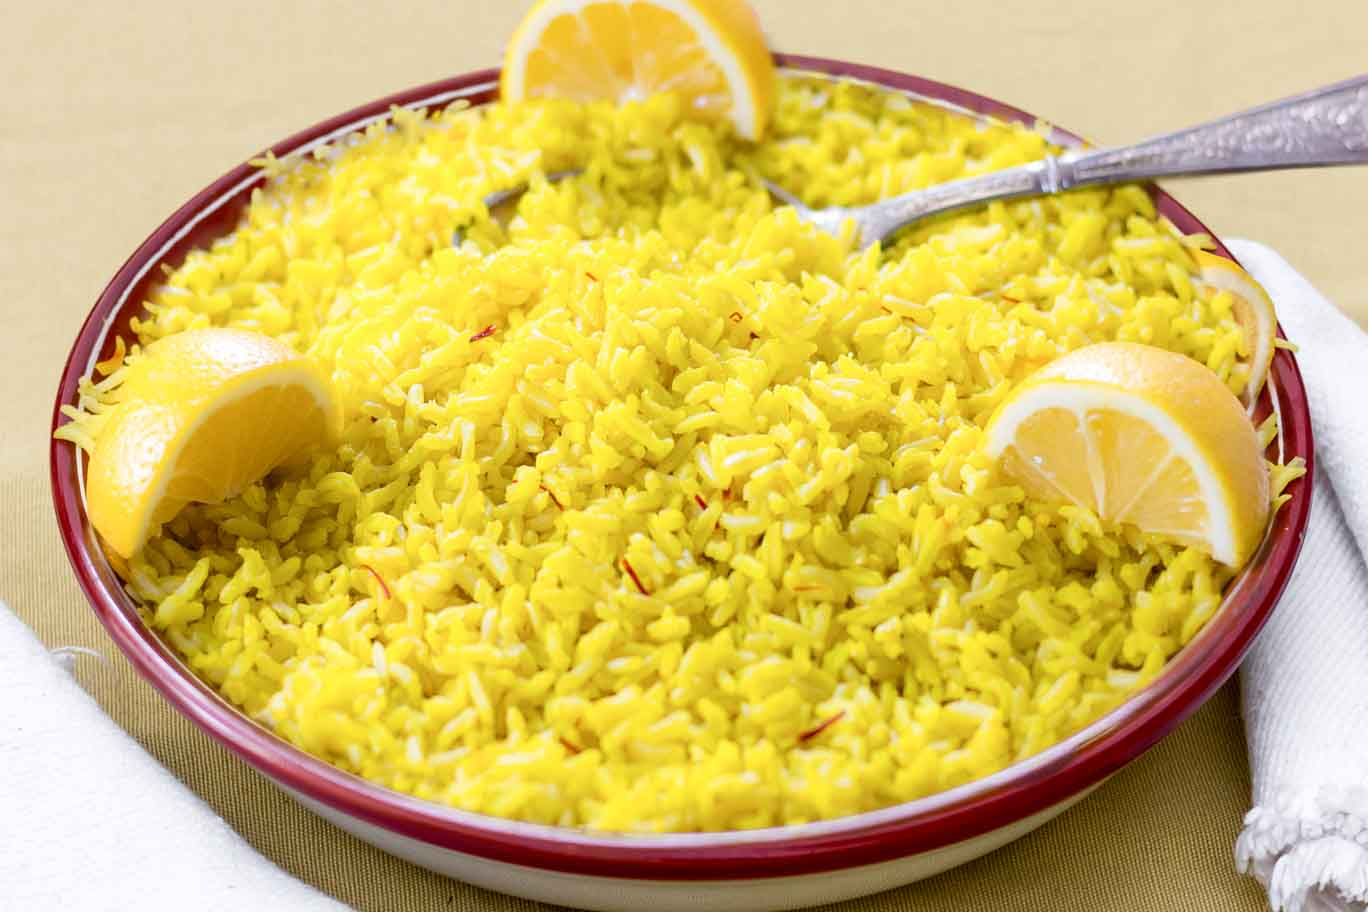 Saffron Lemon Infused Basmati Rice Dishes The Noil Kitchen